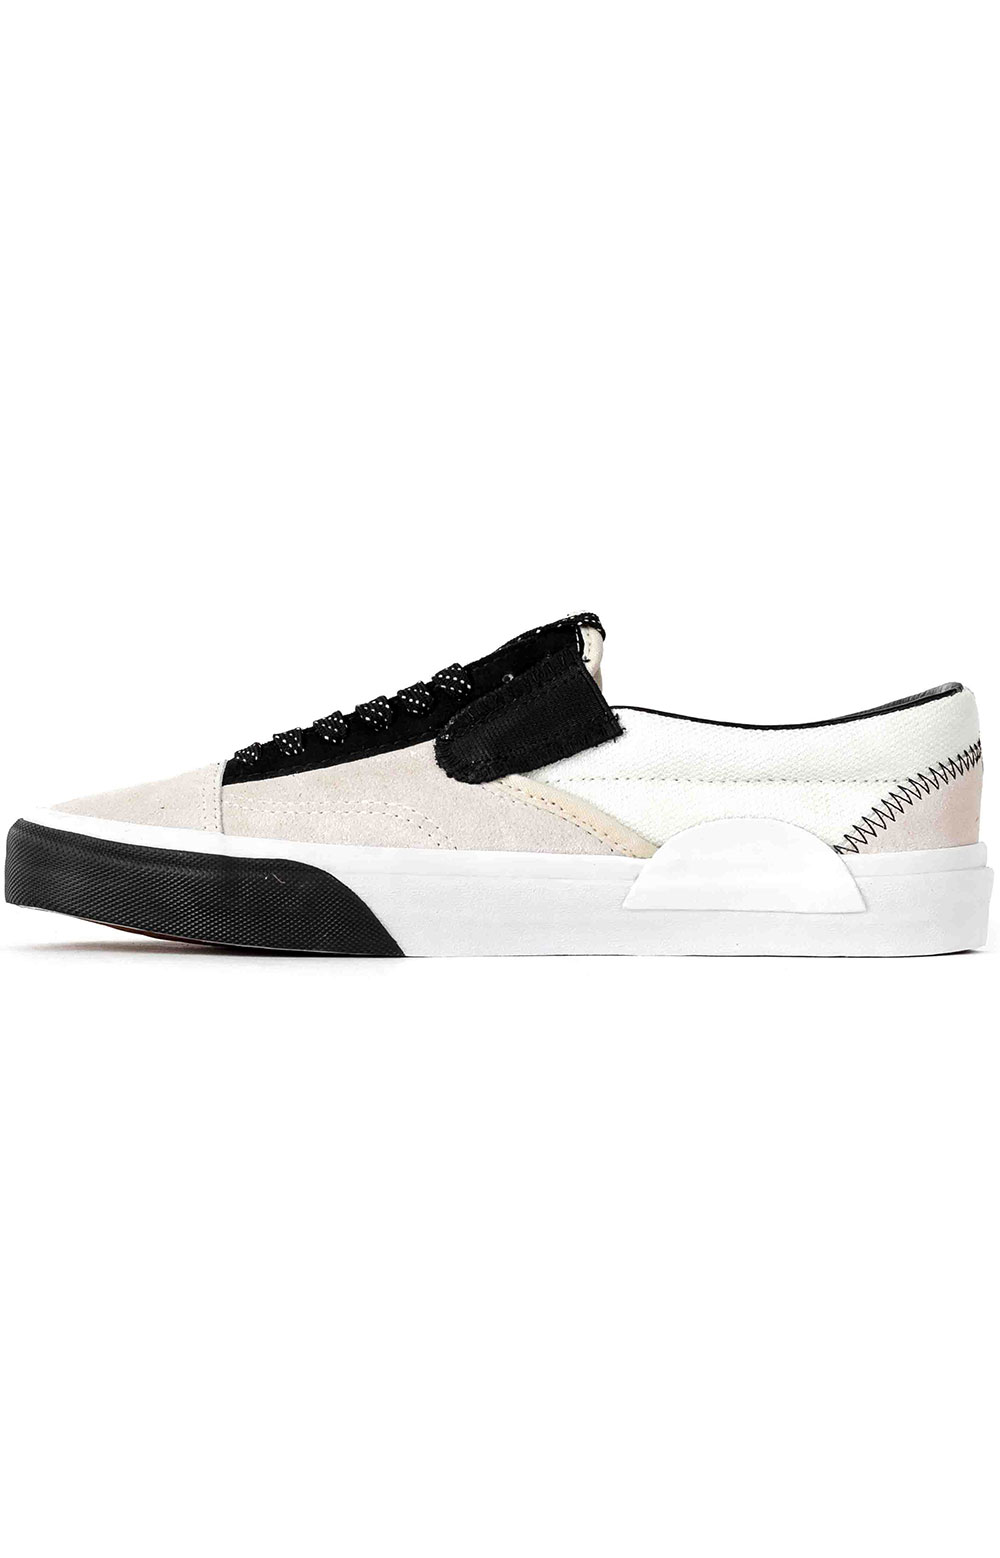 (WM5TUU) Reflective Classic Slip-On Cap Shoe - White  4